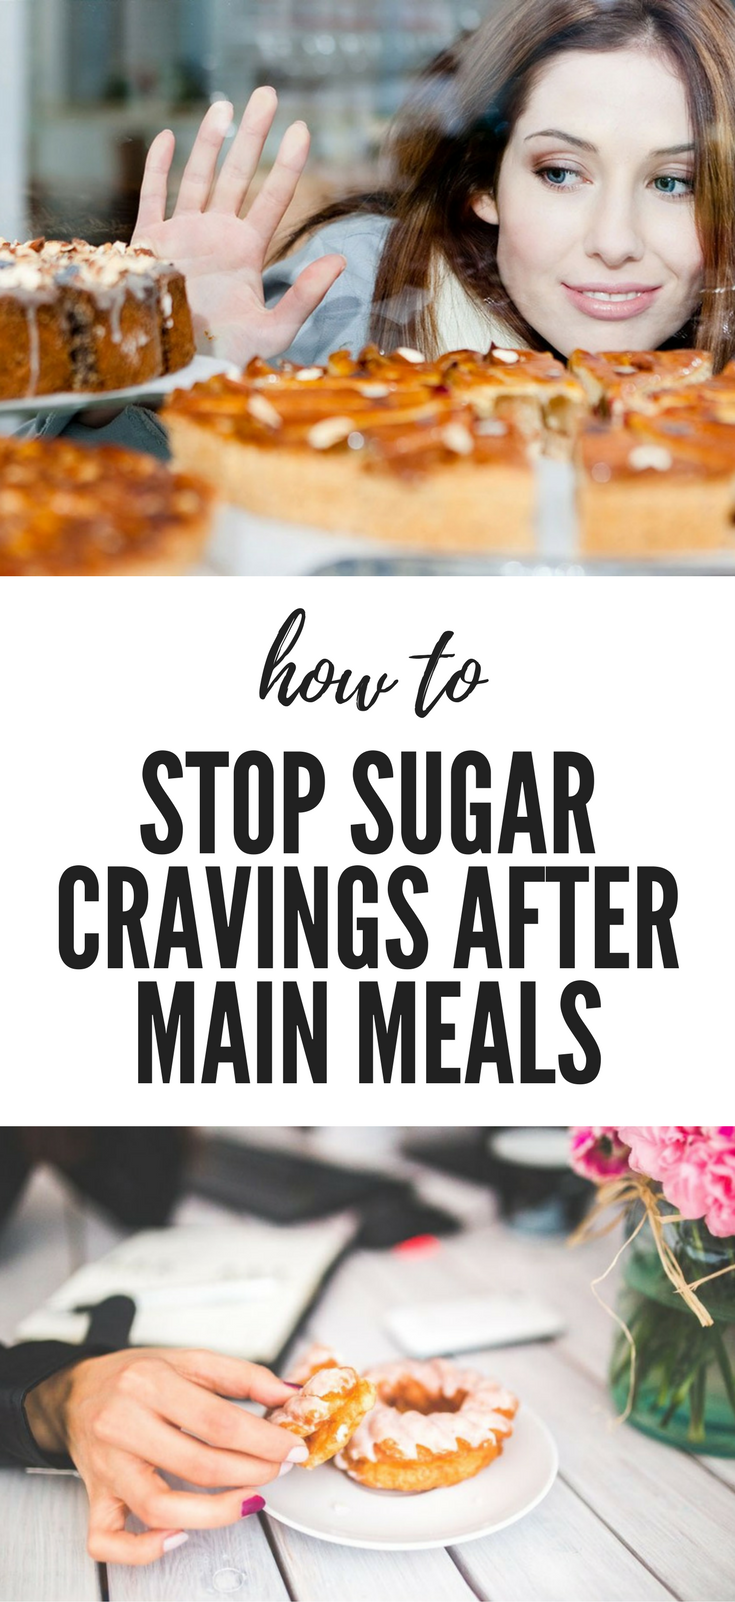 How to stop sugar sweet cravings after main meals